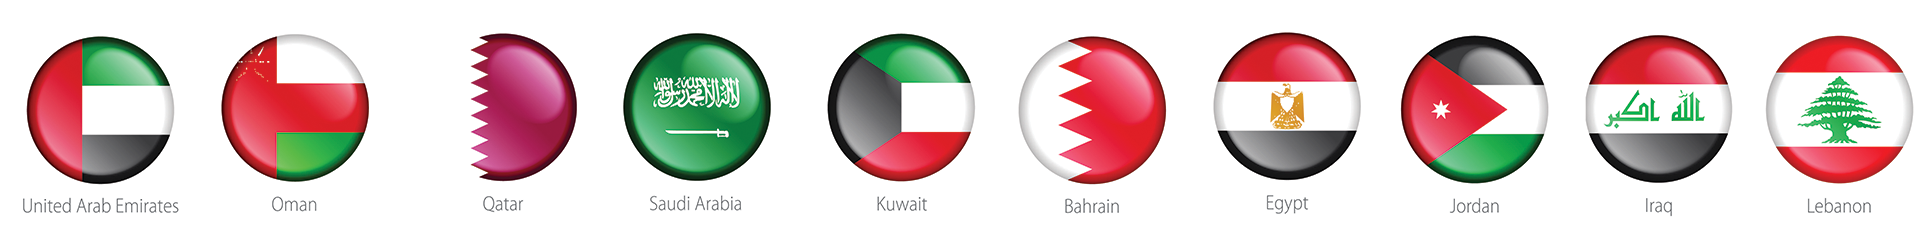 Flags-for-middle-east2